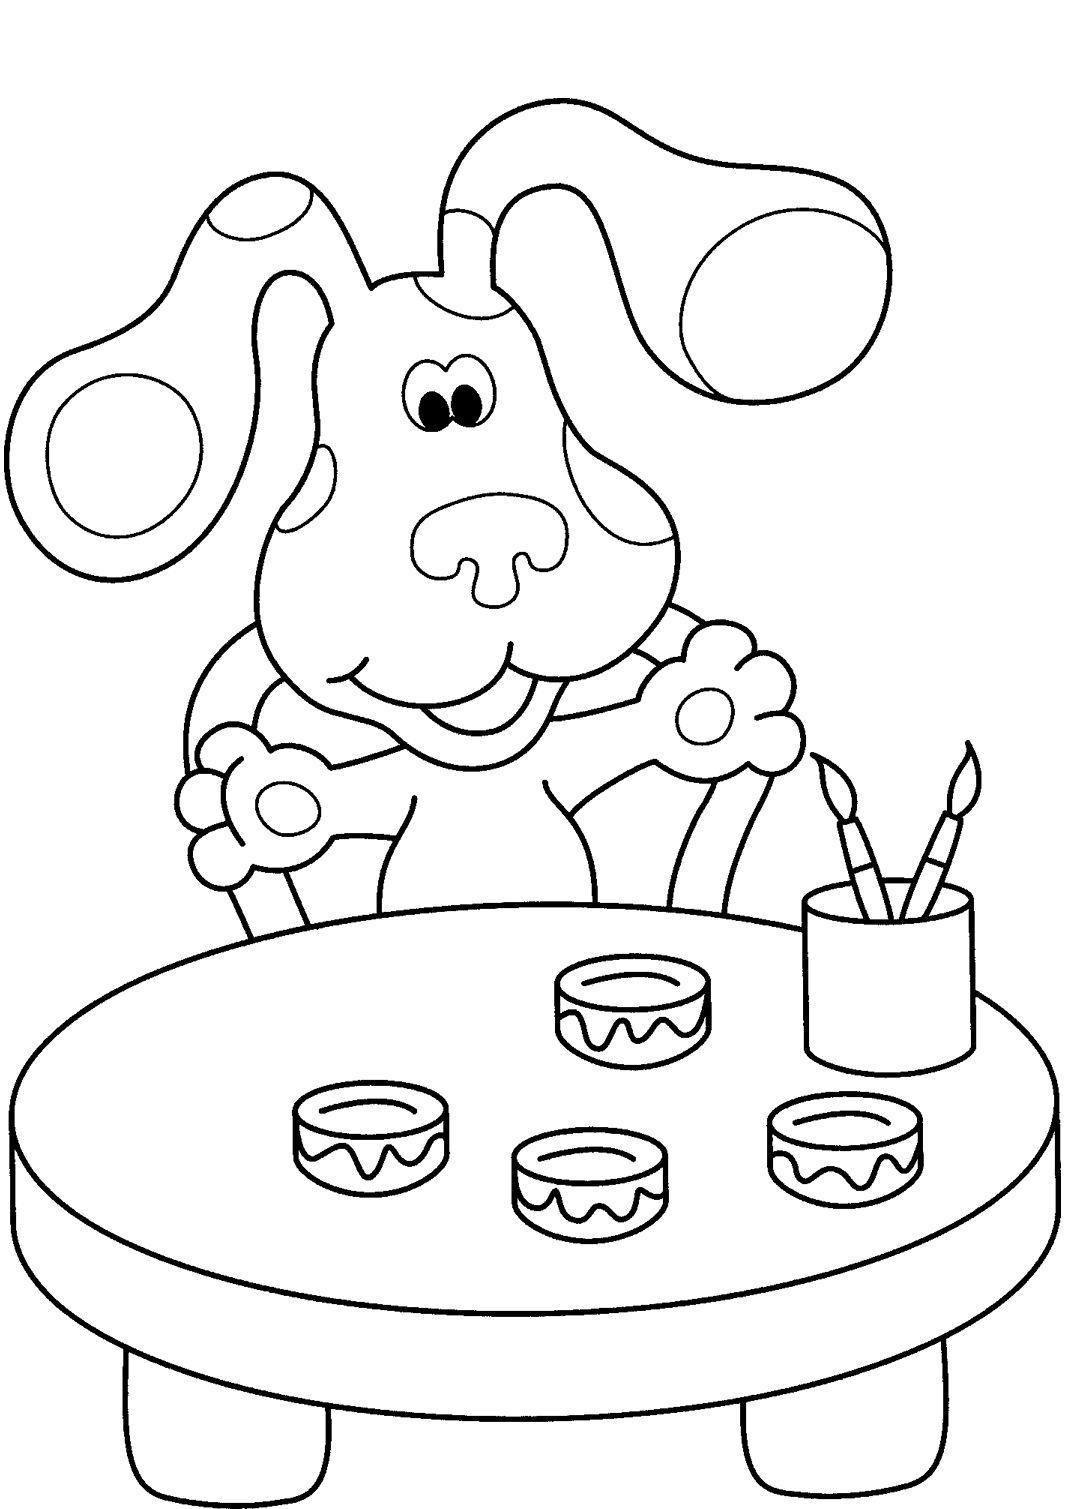 Painter-Blues-Clues-Coloring-Pages.jpg (1067×1509) | Blues Clues ...